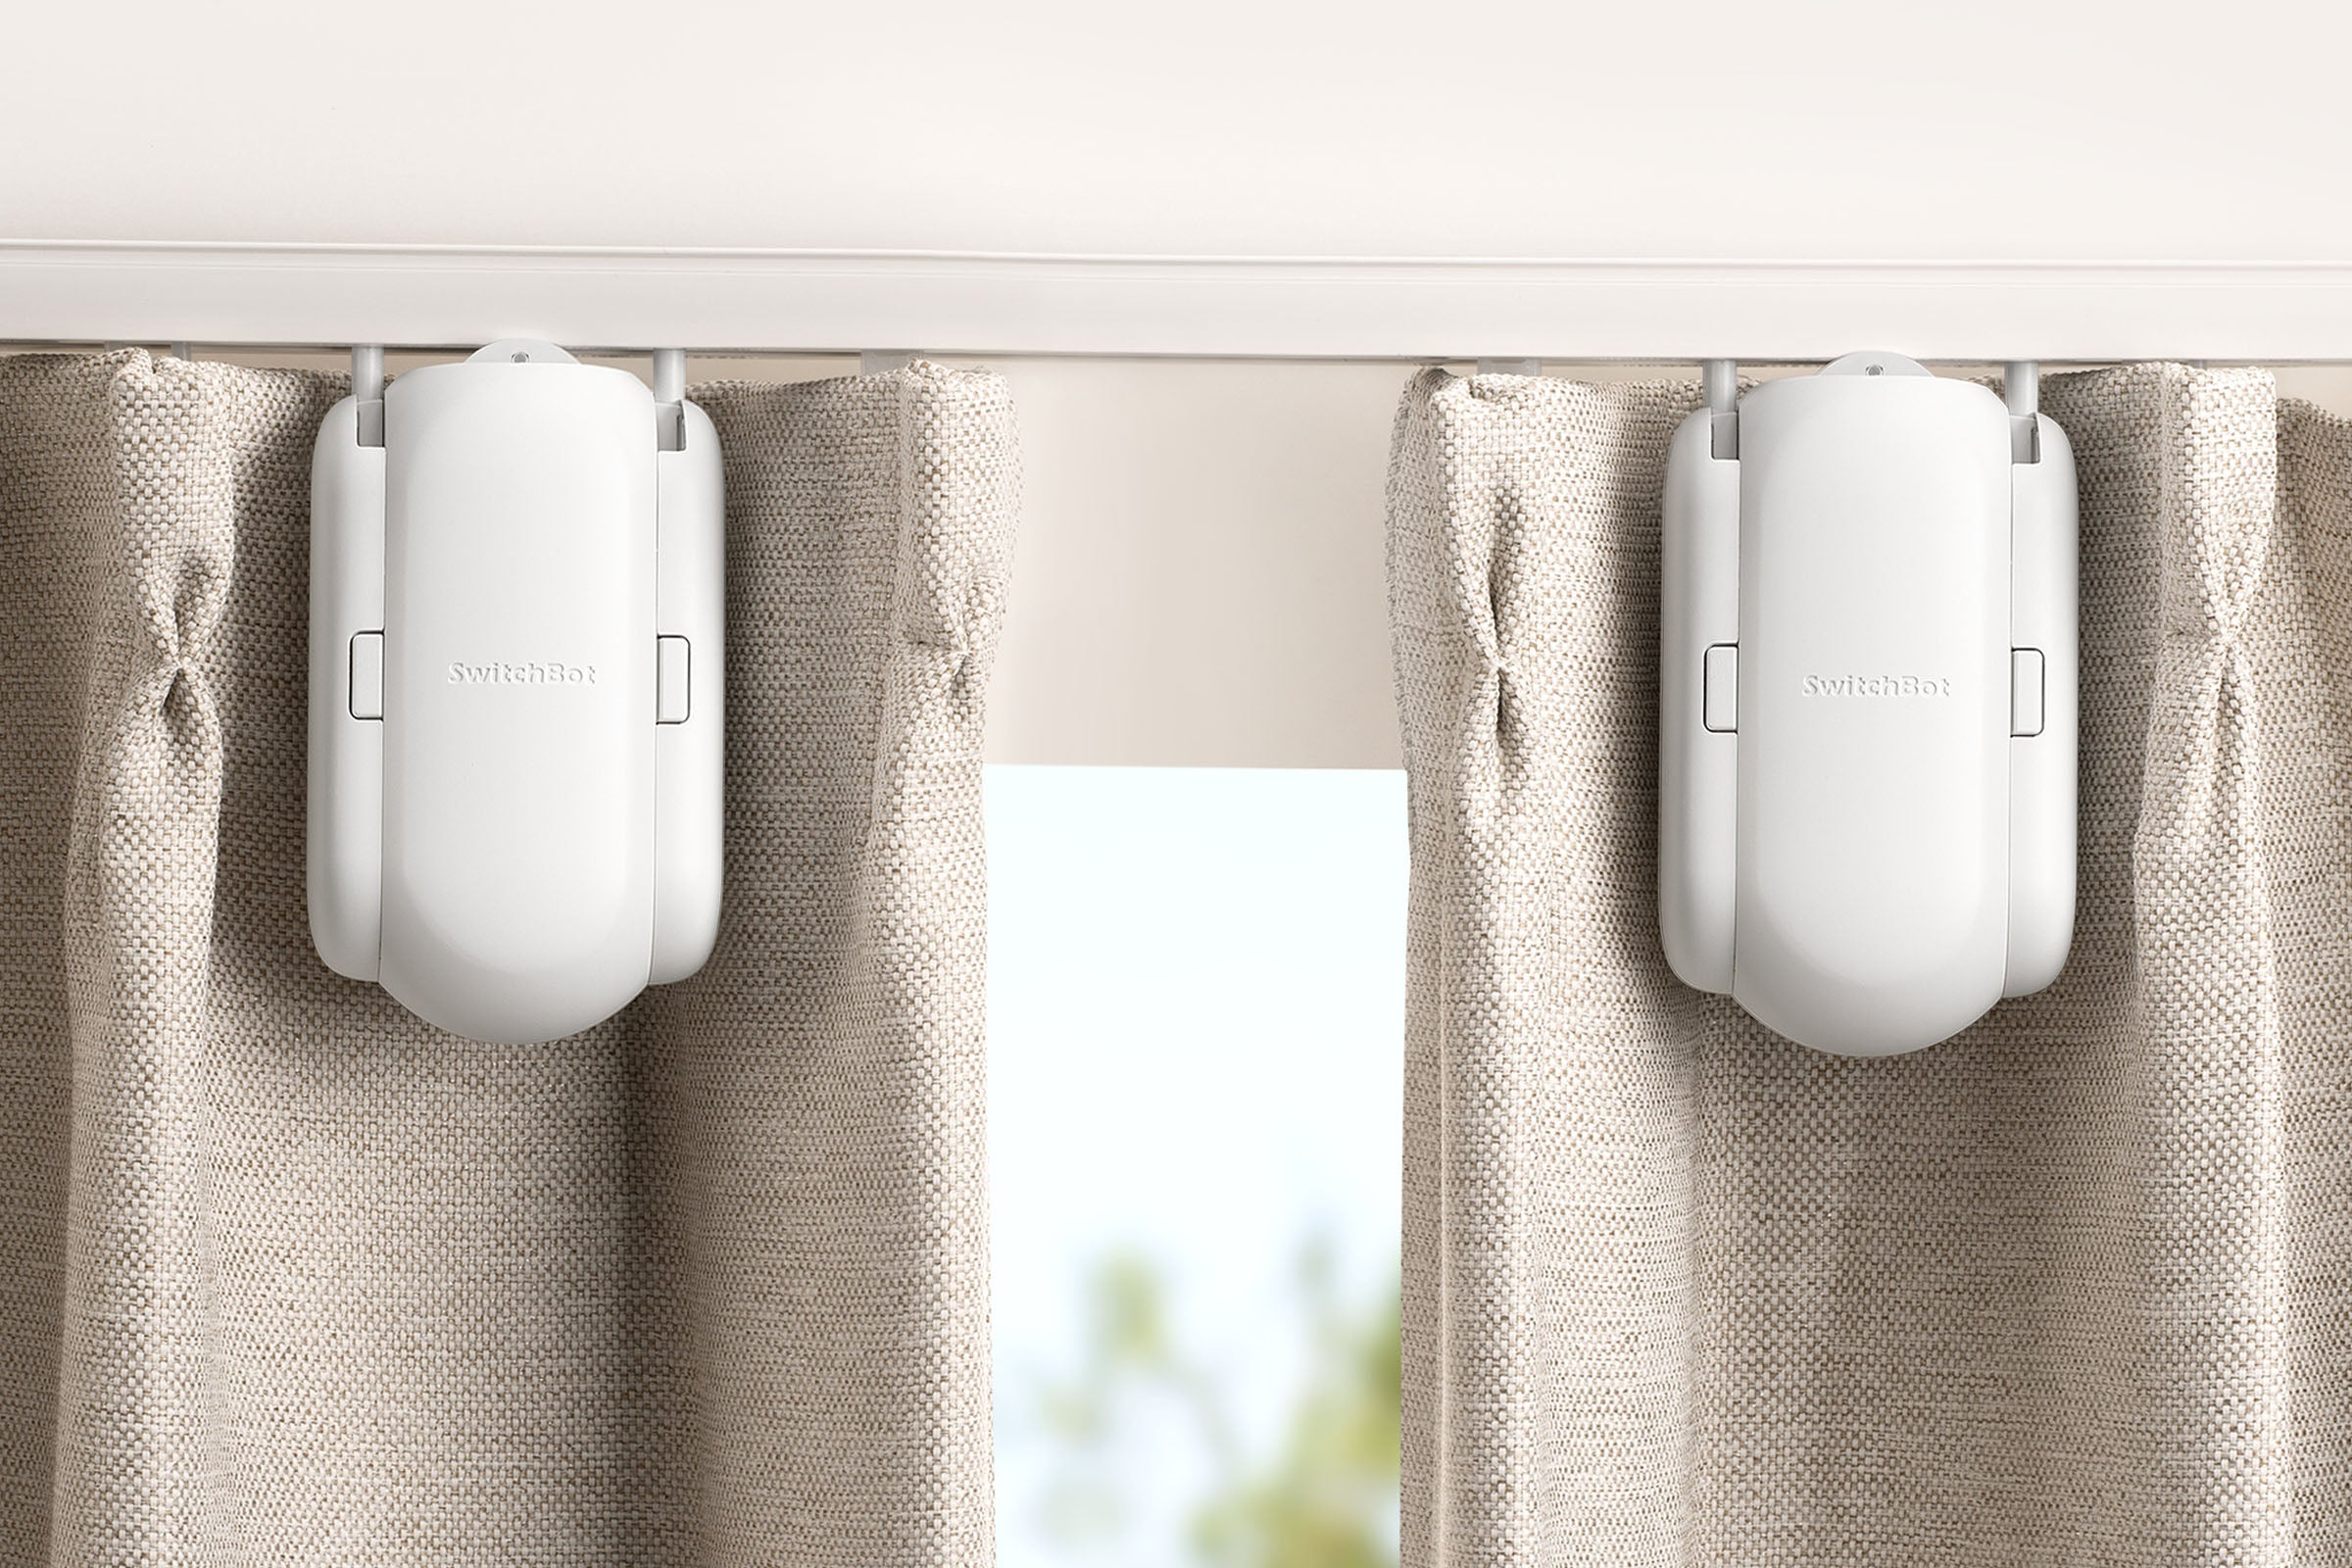 You can get SwitchBot Curtain Starter Pack (two units) so to open and close your double-sided curtains from the middle. By just a simple setup in the App, two curtains will run as one on the track.